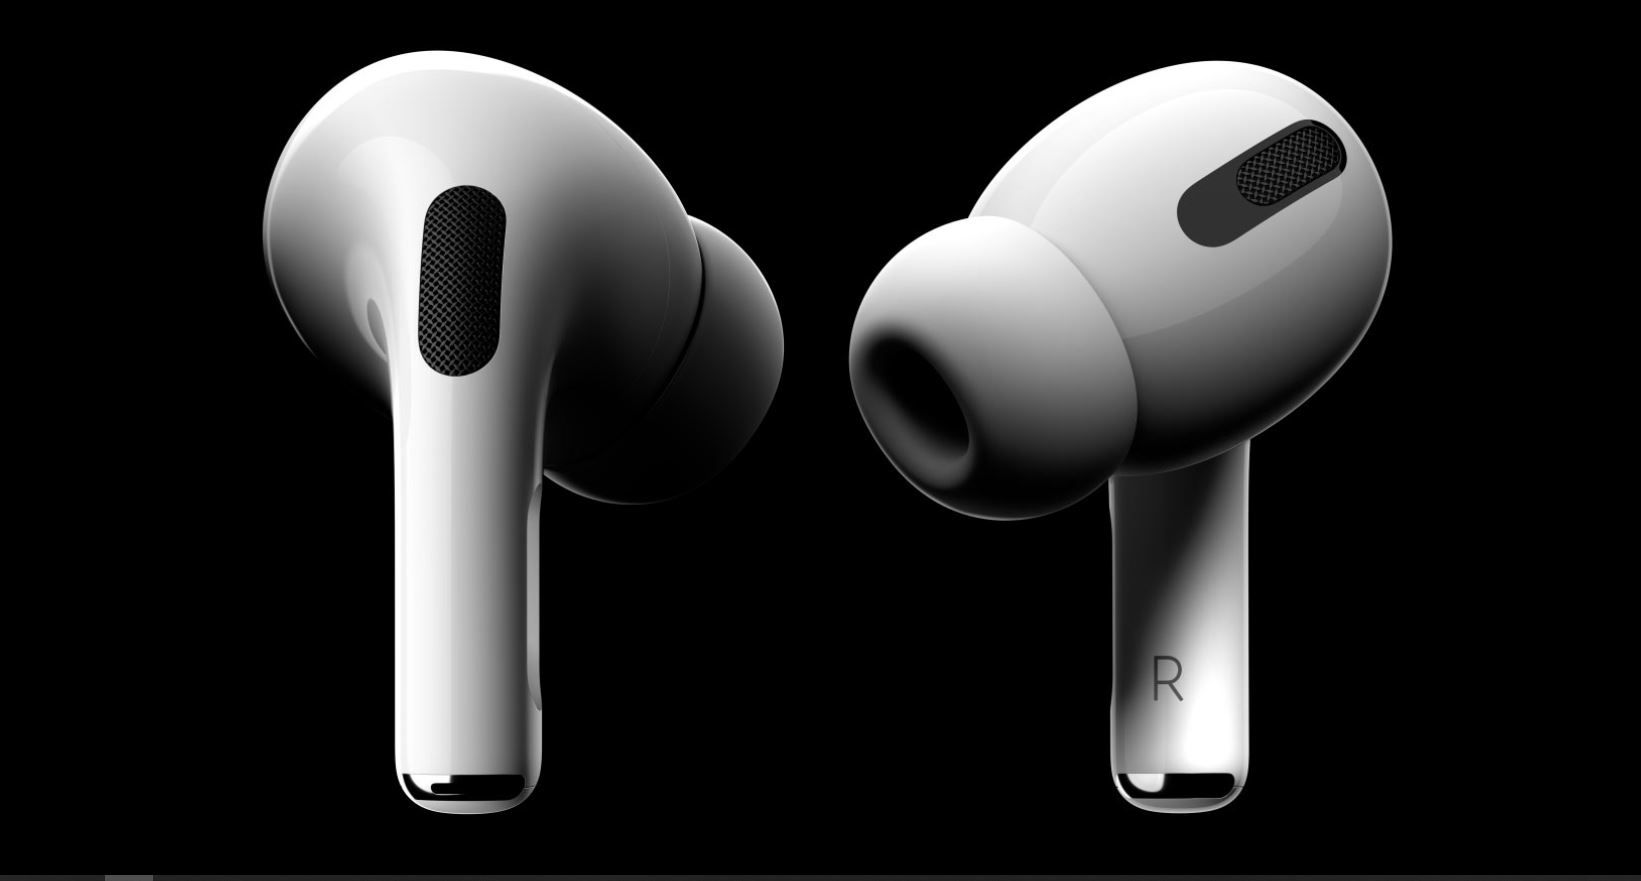 Apple's AirPods Pro have a shorter stem and silicone ear tips.